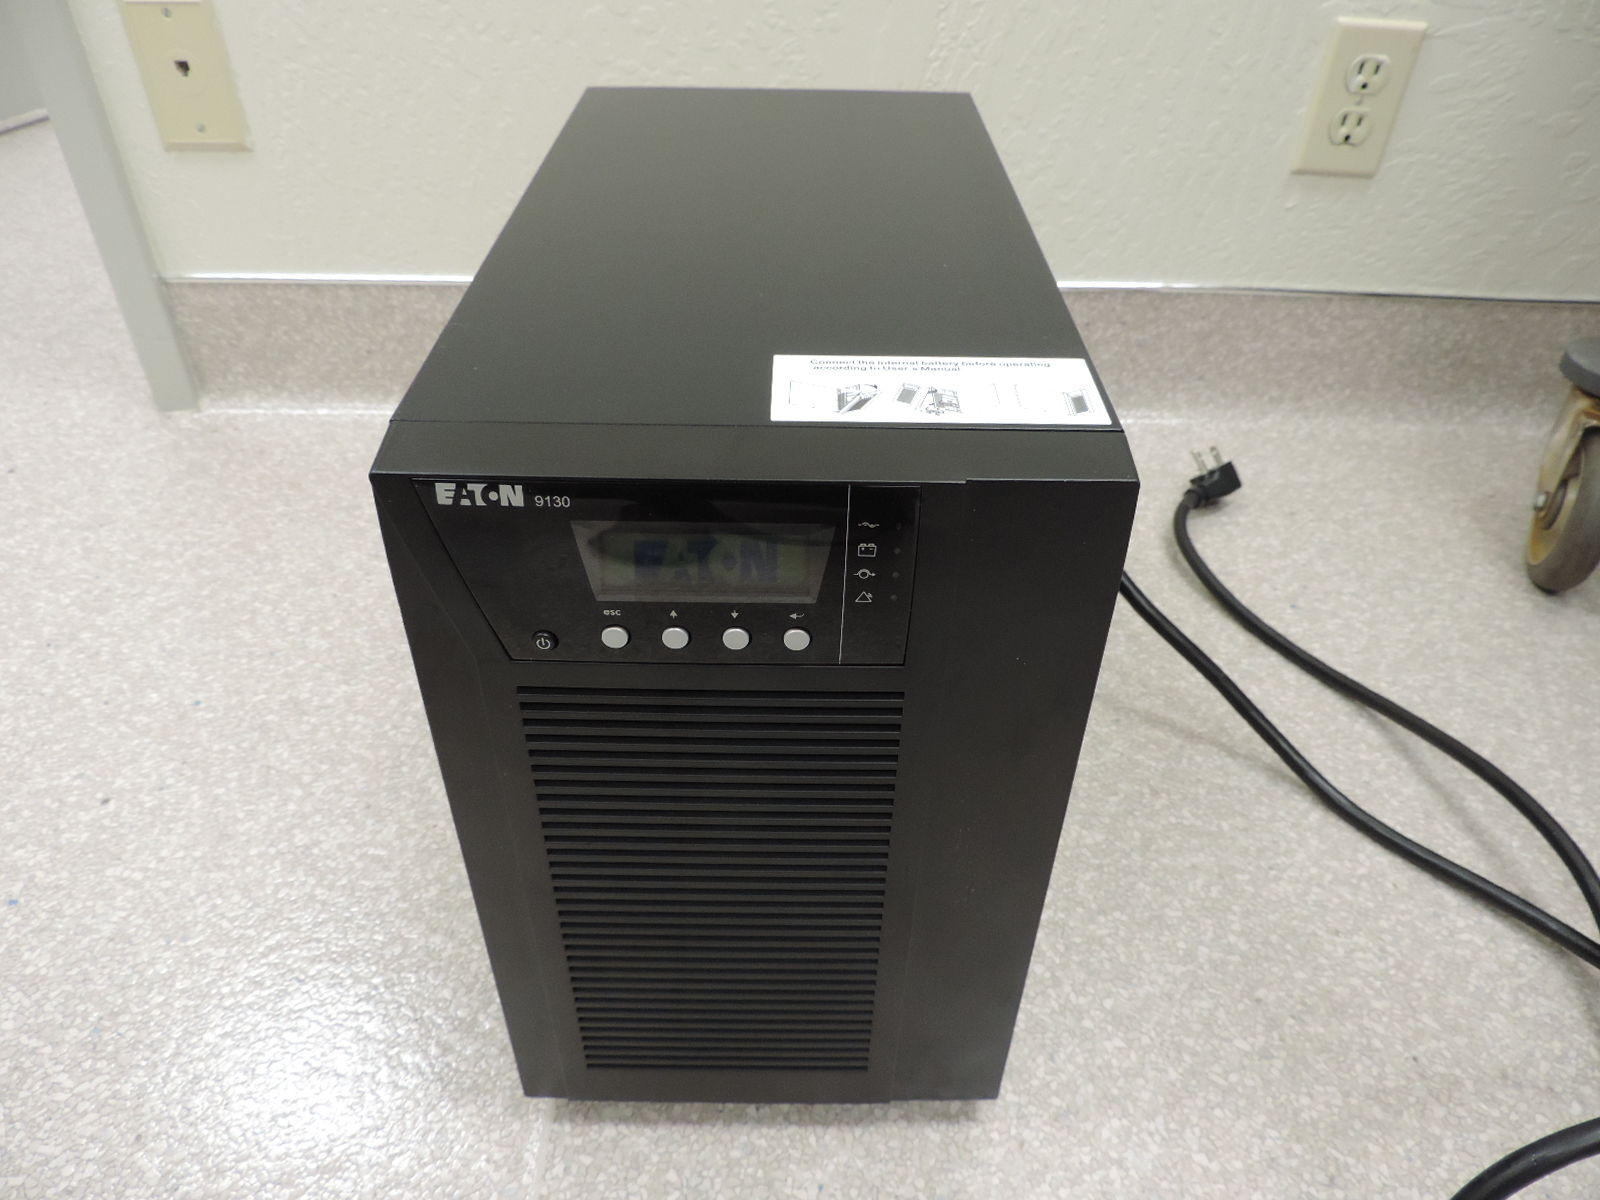 Eaton PW9130L2000T-XL UPS Power Conditioner